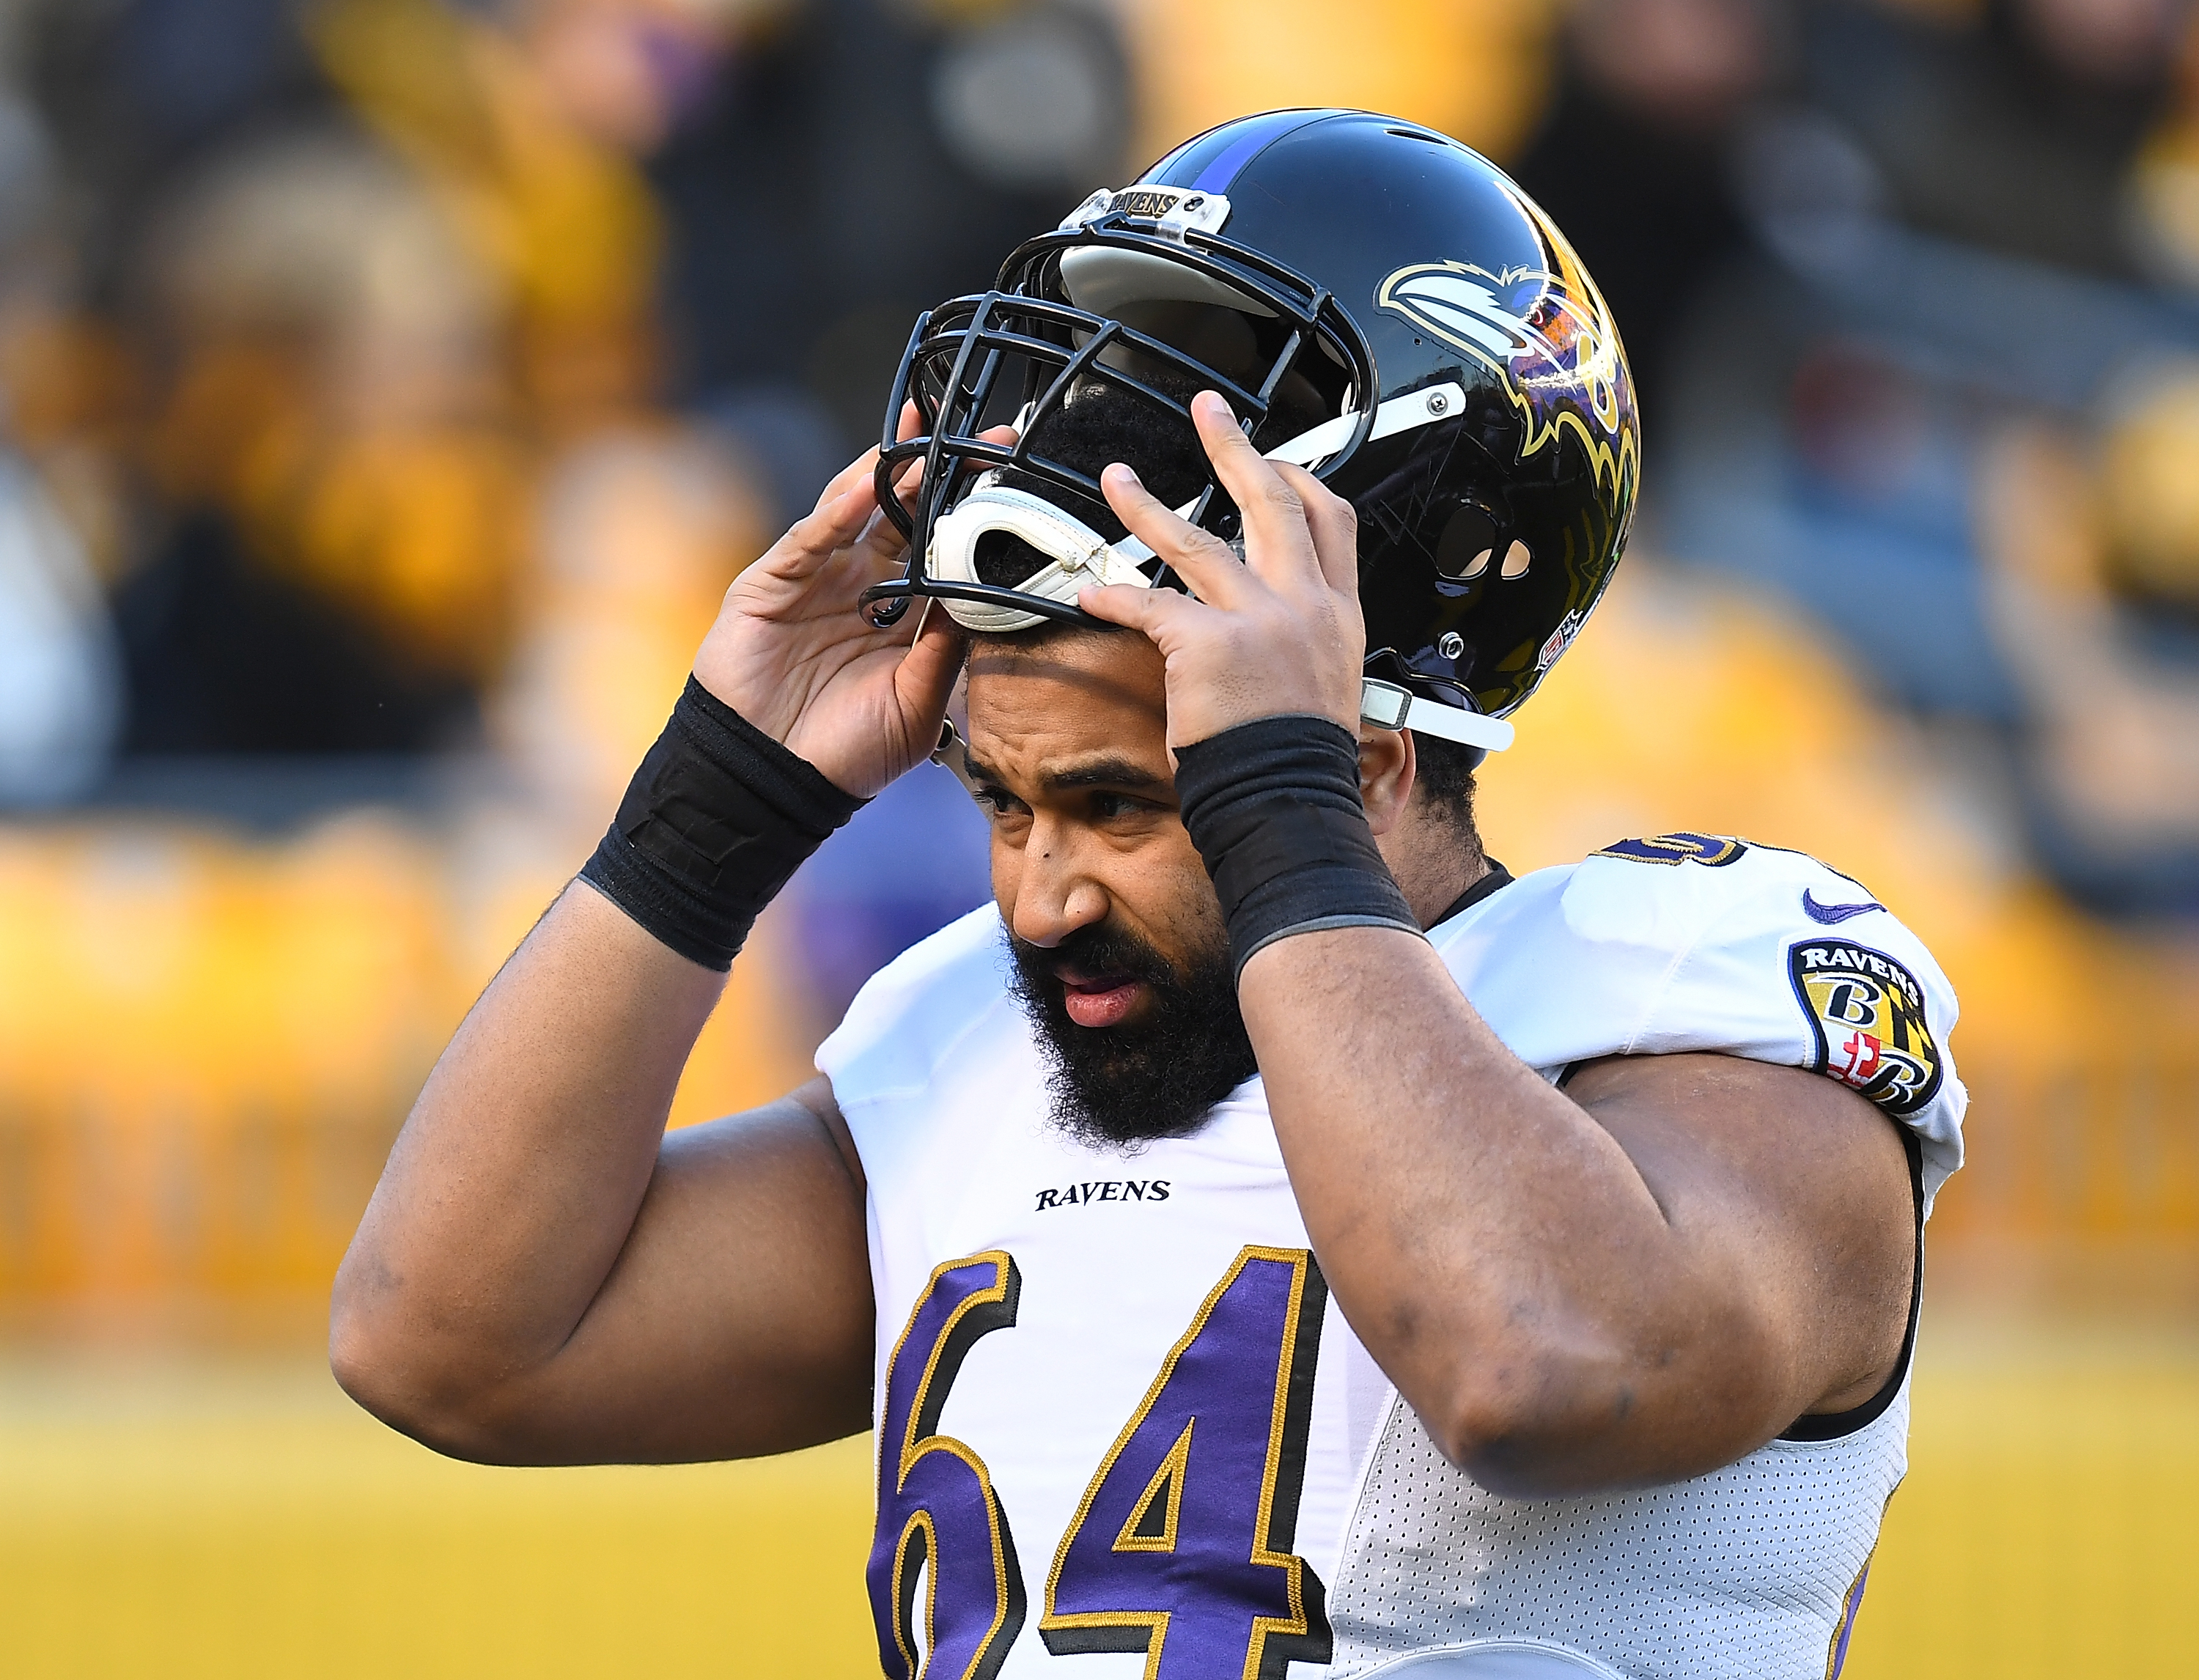 John Urschel of the Baltimore Ravens looks on during the game against the Pittsburgh Steelers at Heinz Field on December 25, 2016 in Pittsburgh, Pennsylvania.